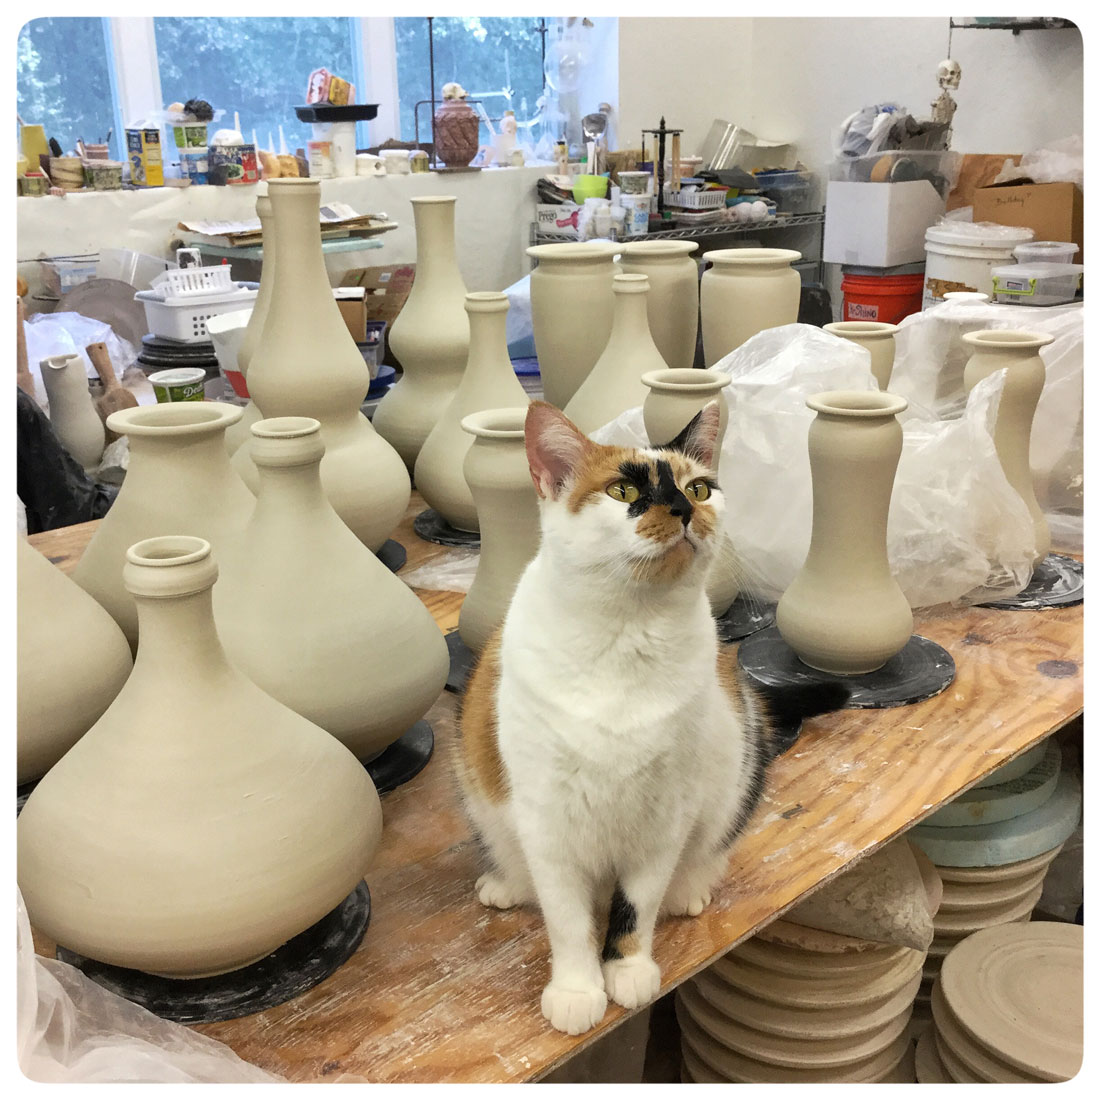 Koi Studio Cat, Bulldog Pottery, Seagrove, North Carolina